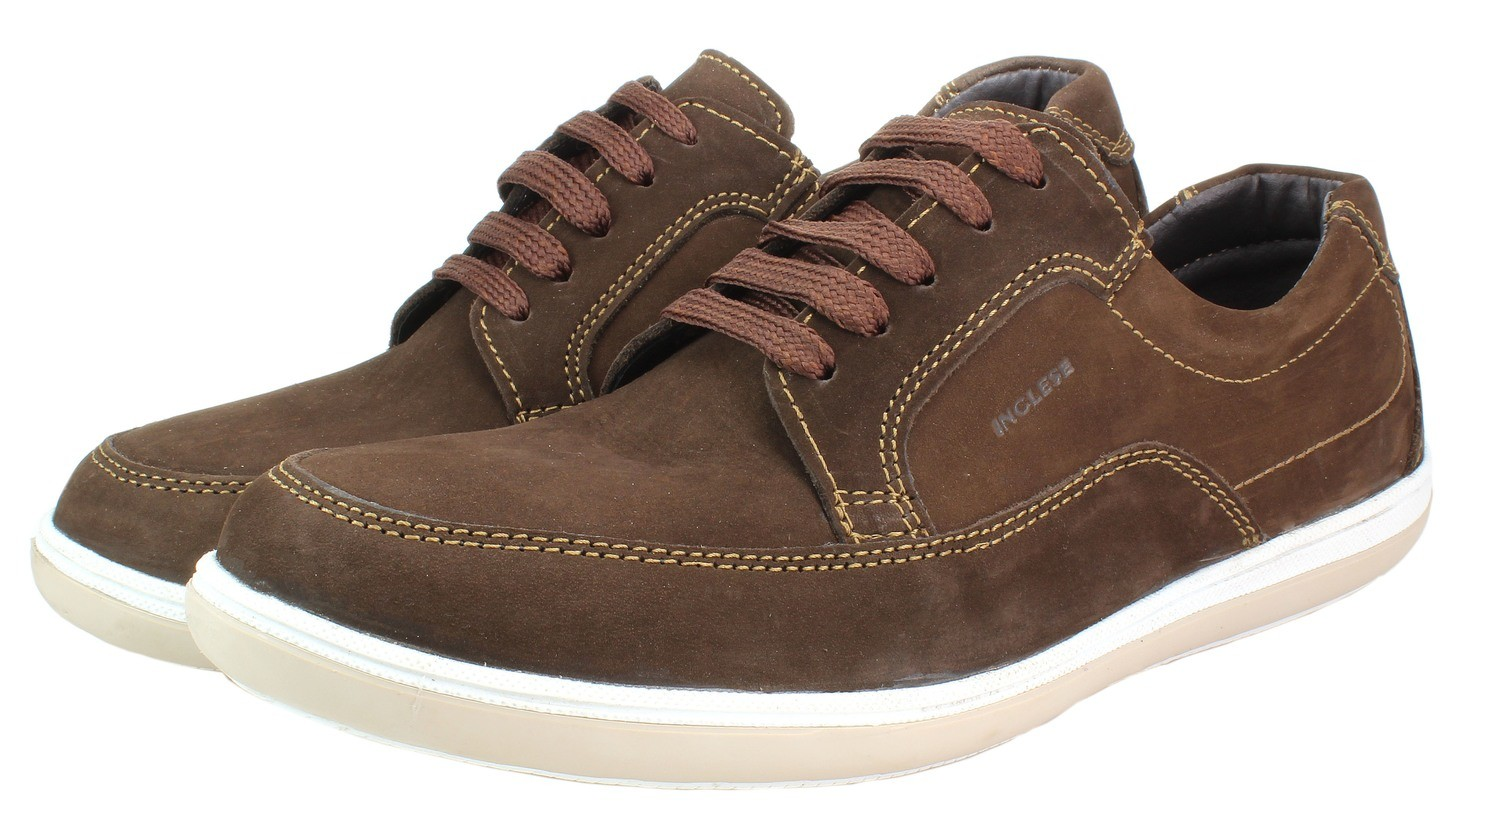 Mens Shoes Genuine Nubuck Leather Brown - SUGGESTED RETAIL PRICE $45.00 - WHOLESALE PRICE $10 - Minimum purchase 9pairs